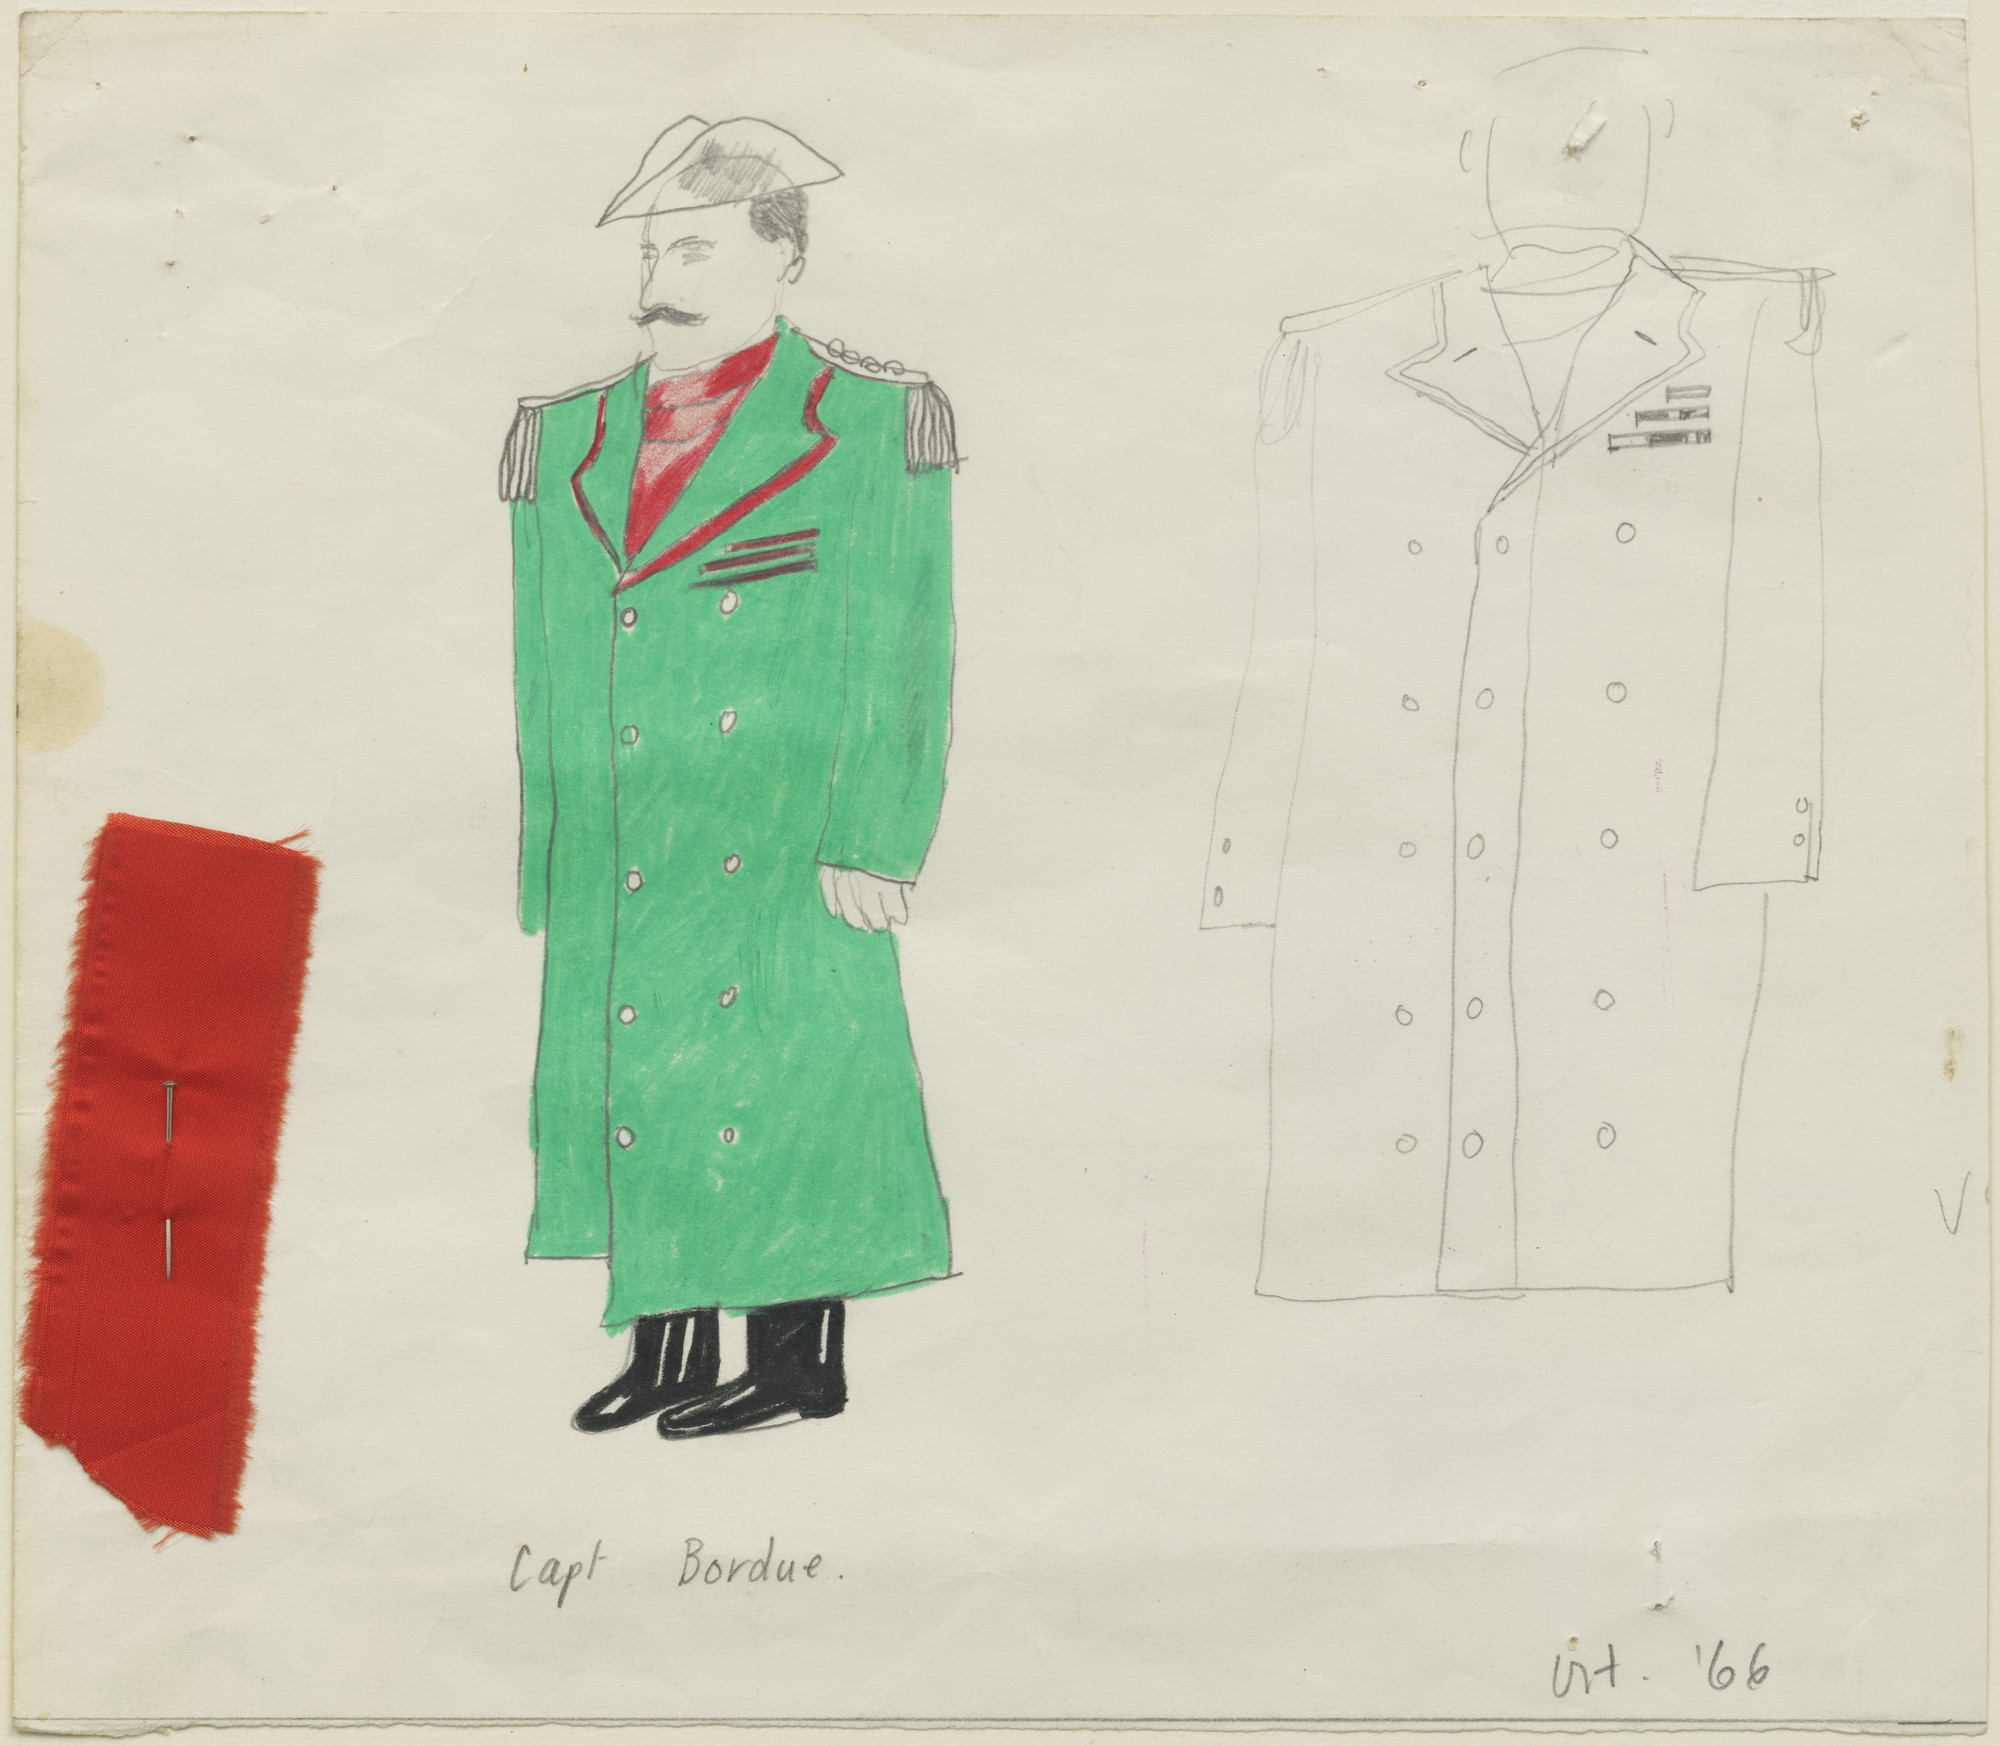 David Hockney. Capt. Bordure. Costume design for the play Ubu Roi. 1966